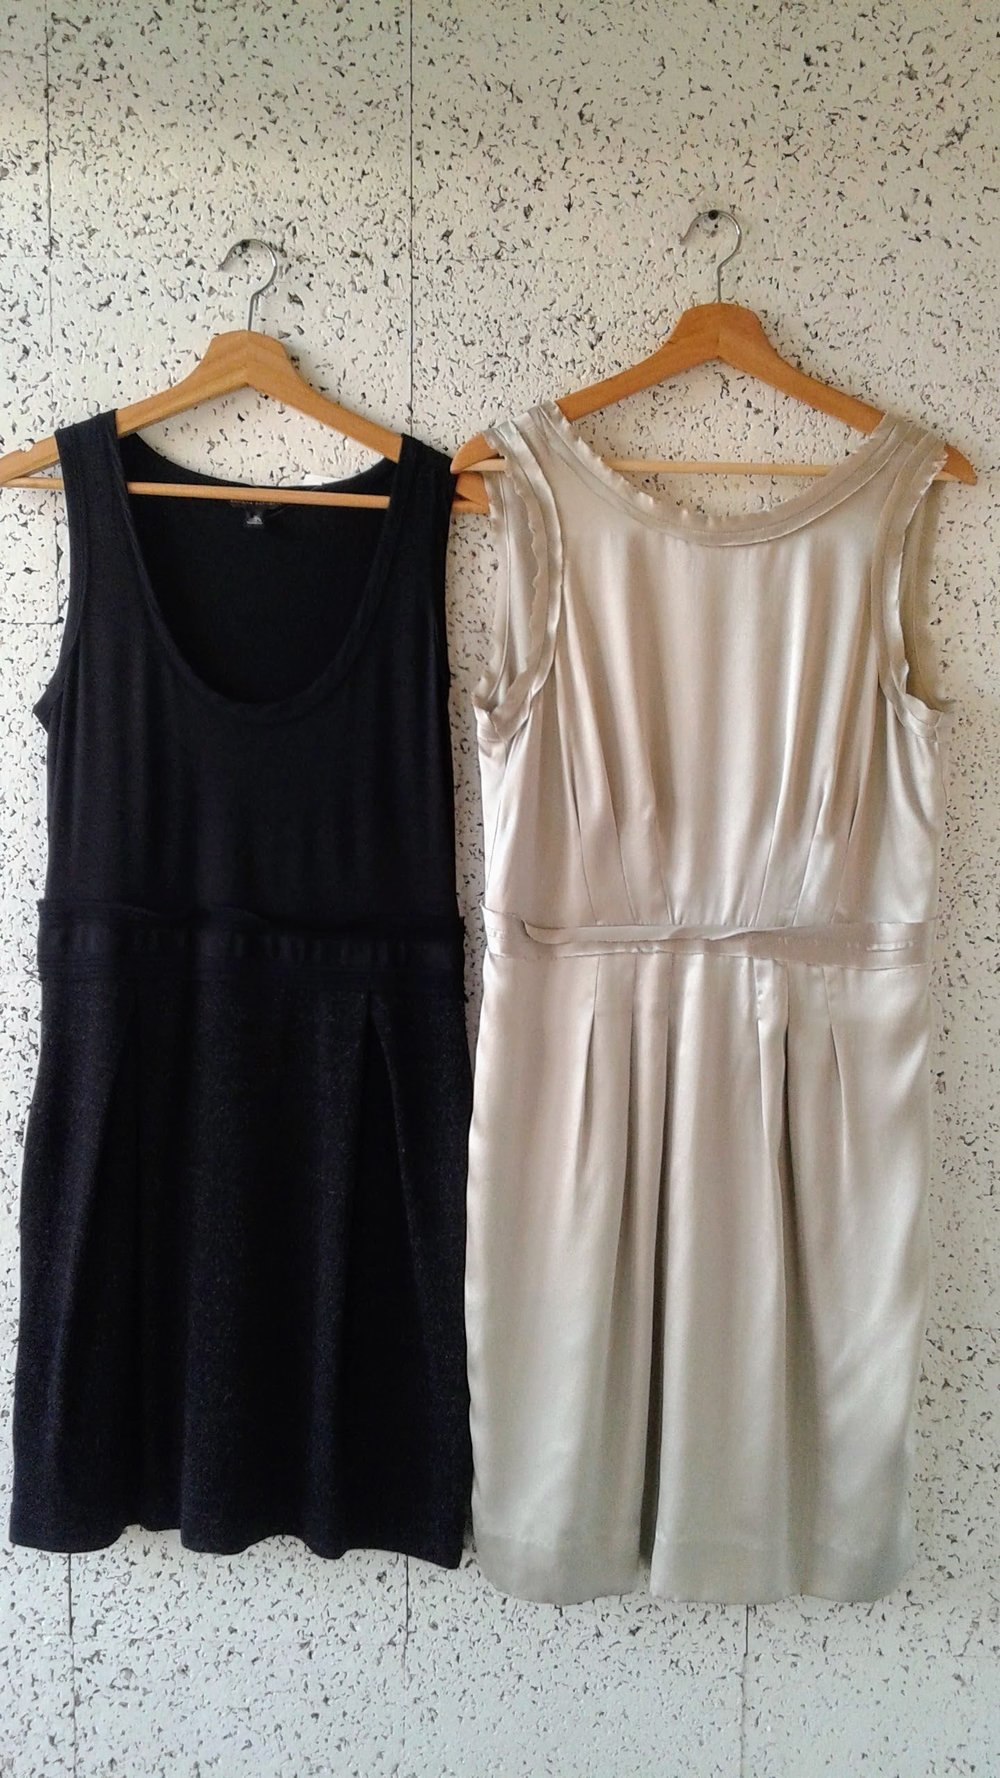 Banana Republic dresses, each (NWT); Size 10, $48.